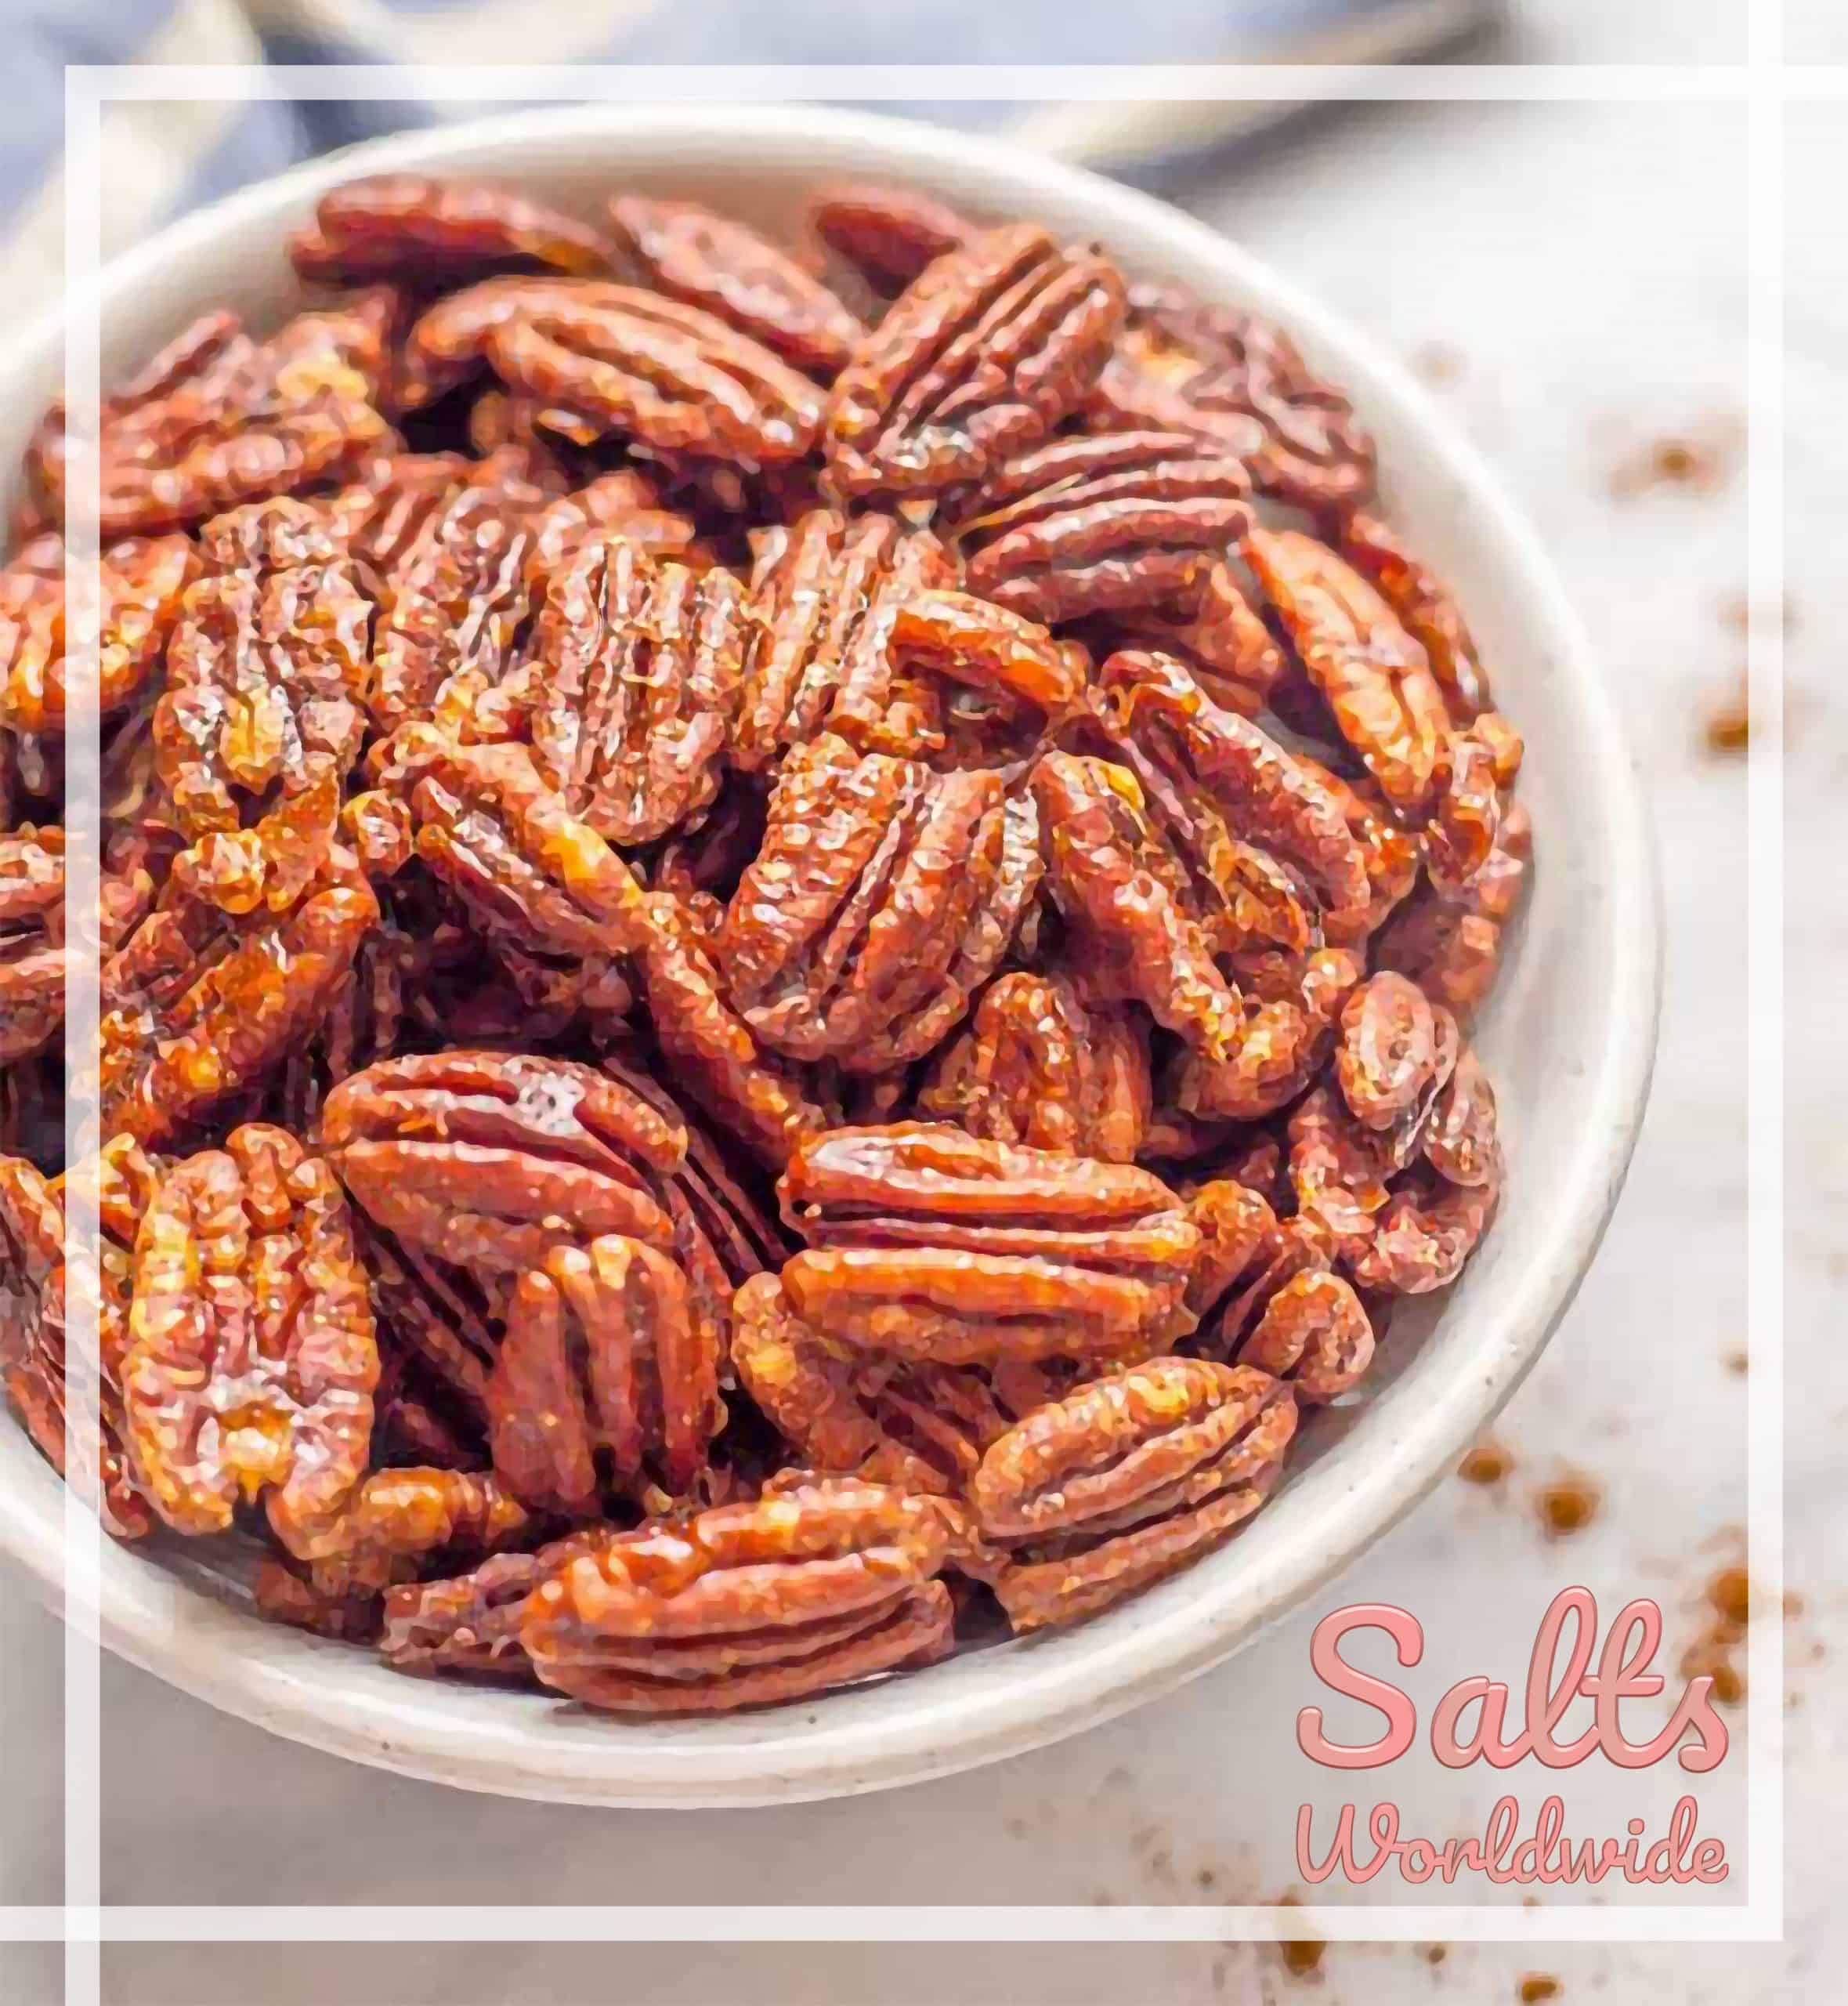 Make Pecans Part of Your Holiday Snacks: The Tremendous Health Benefits of Pecans Make Them a Must Have 1